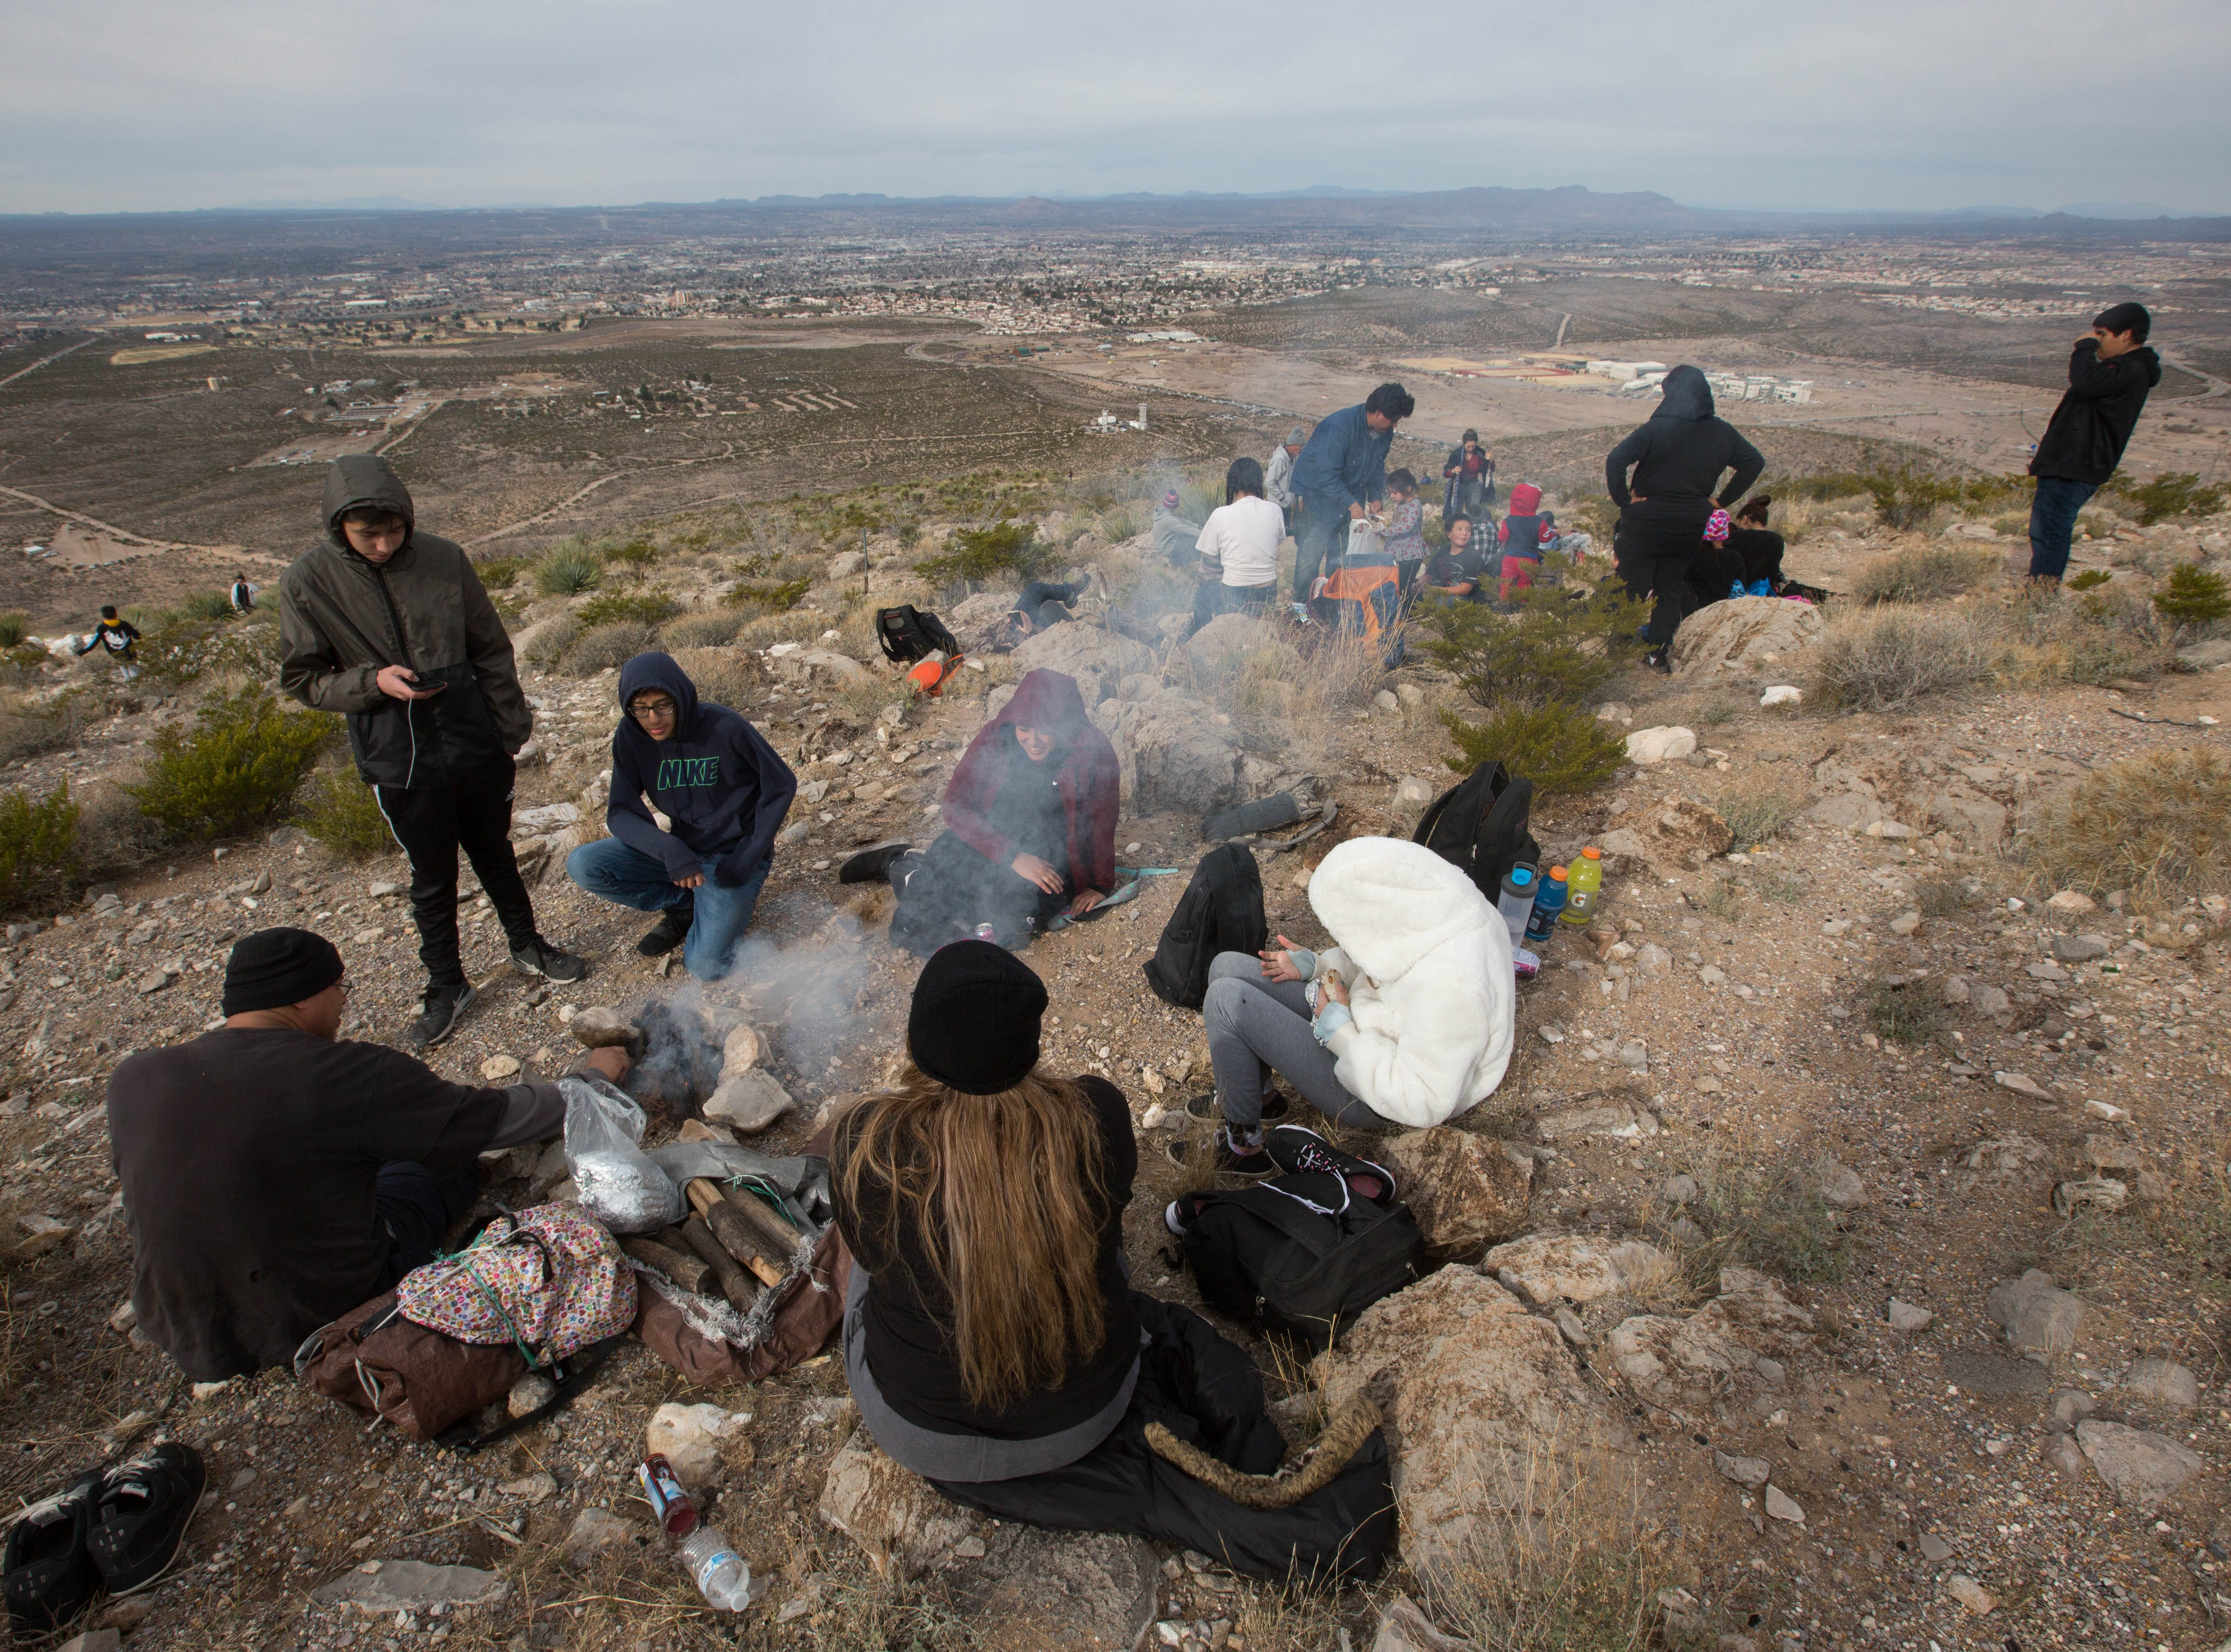 After reaching the top of Tortugas Mountain, many pilgrims start camp fires to cook or warm food before mass starts, Tuesday Dec. 11, 2018.